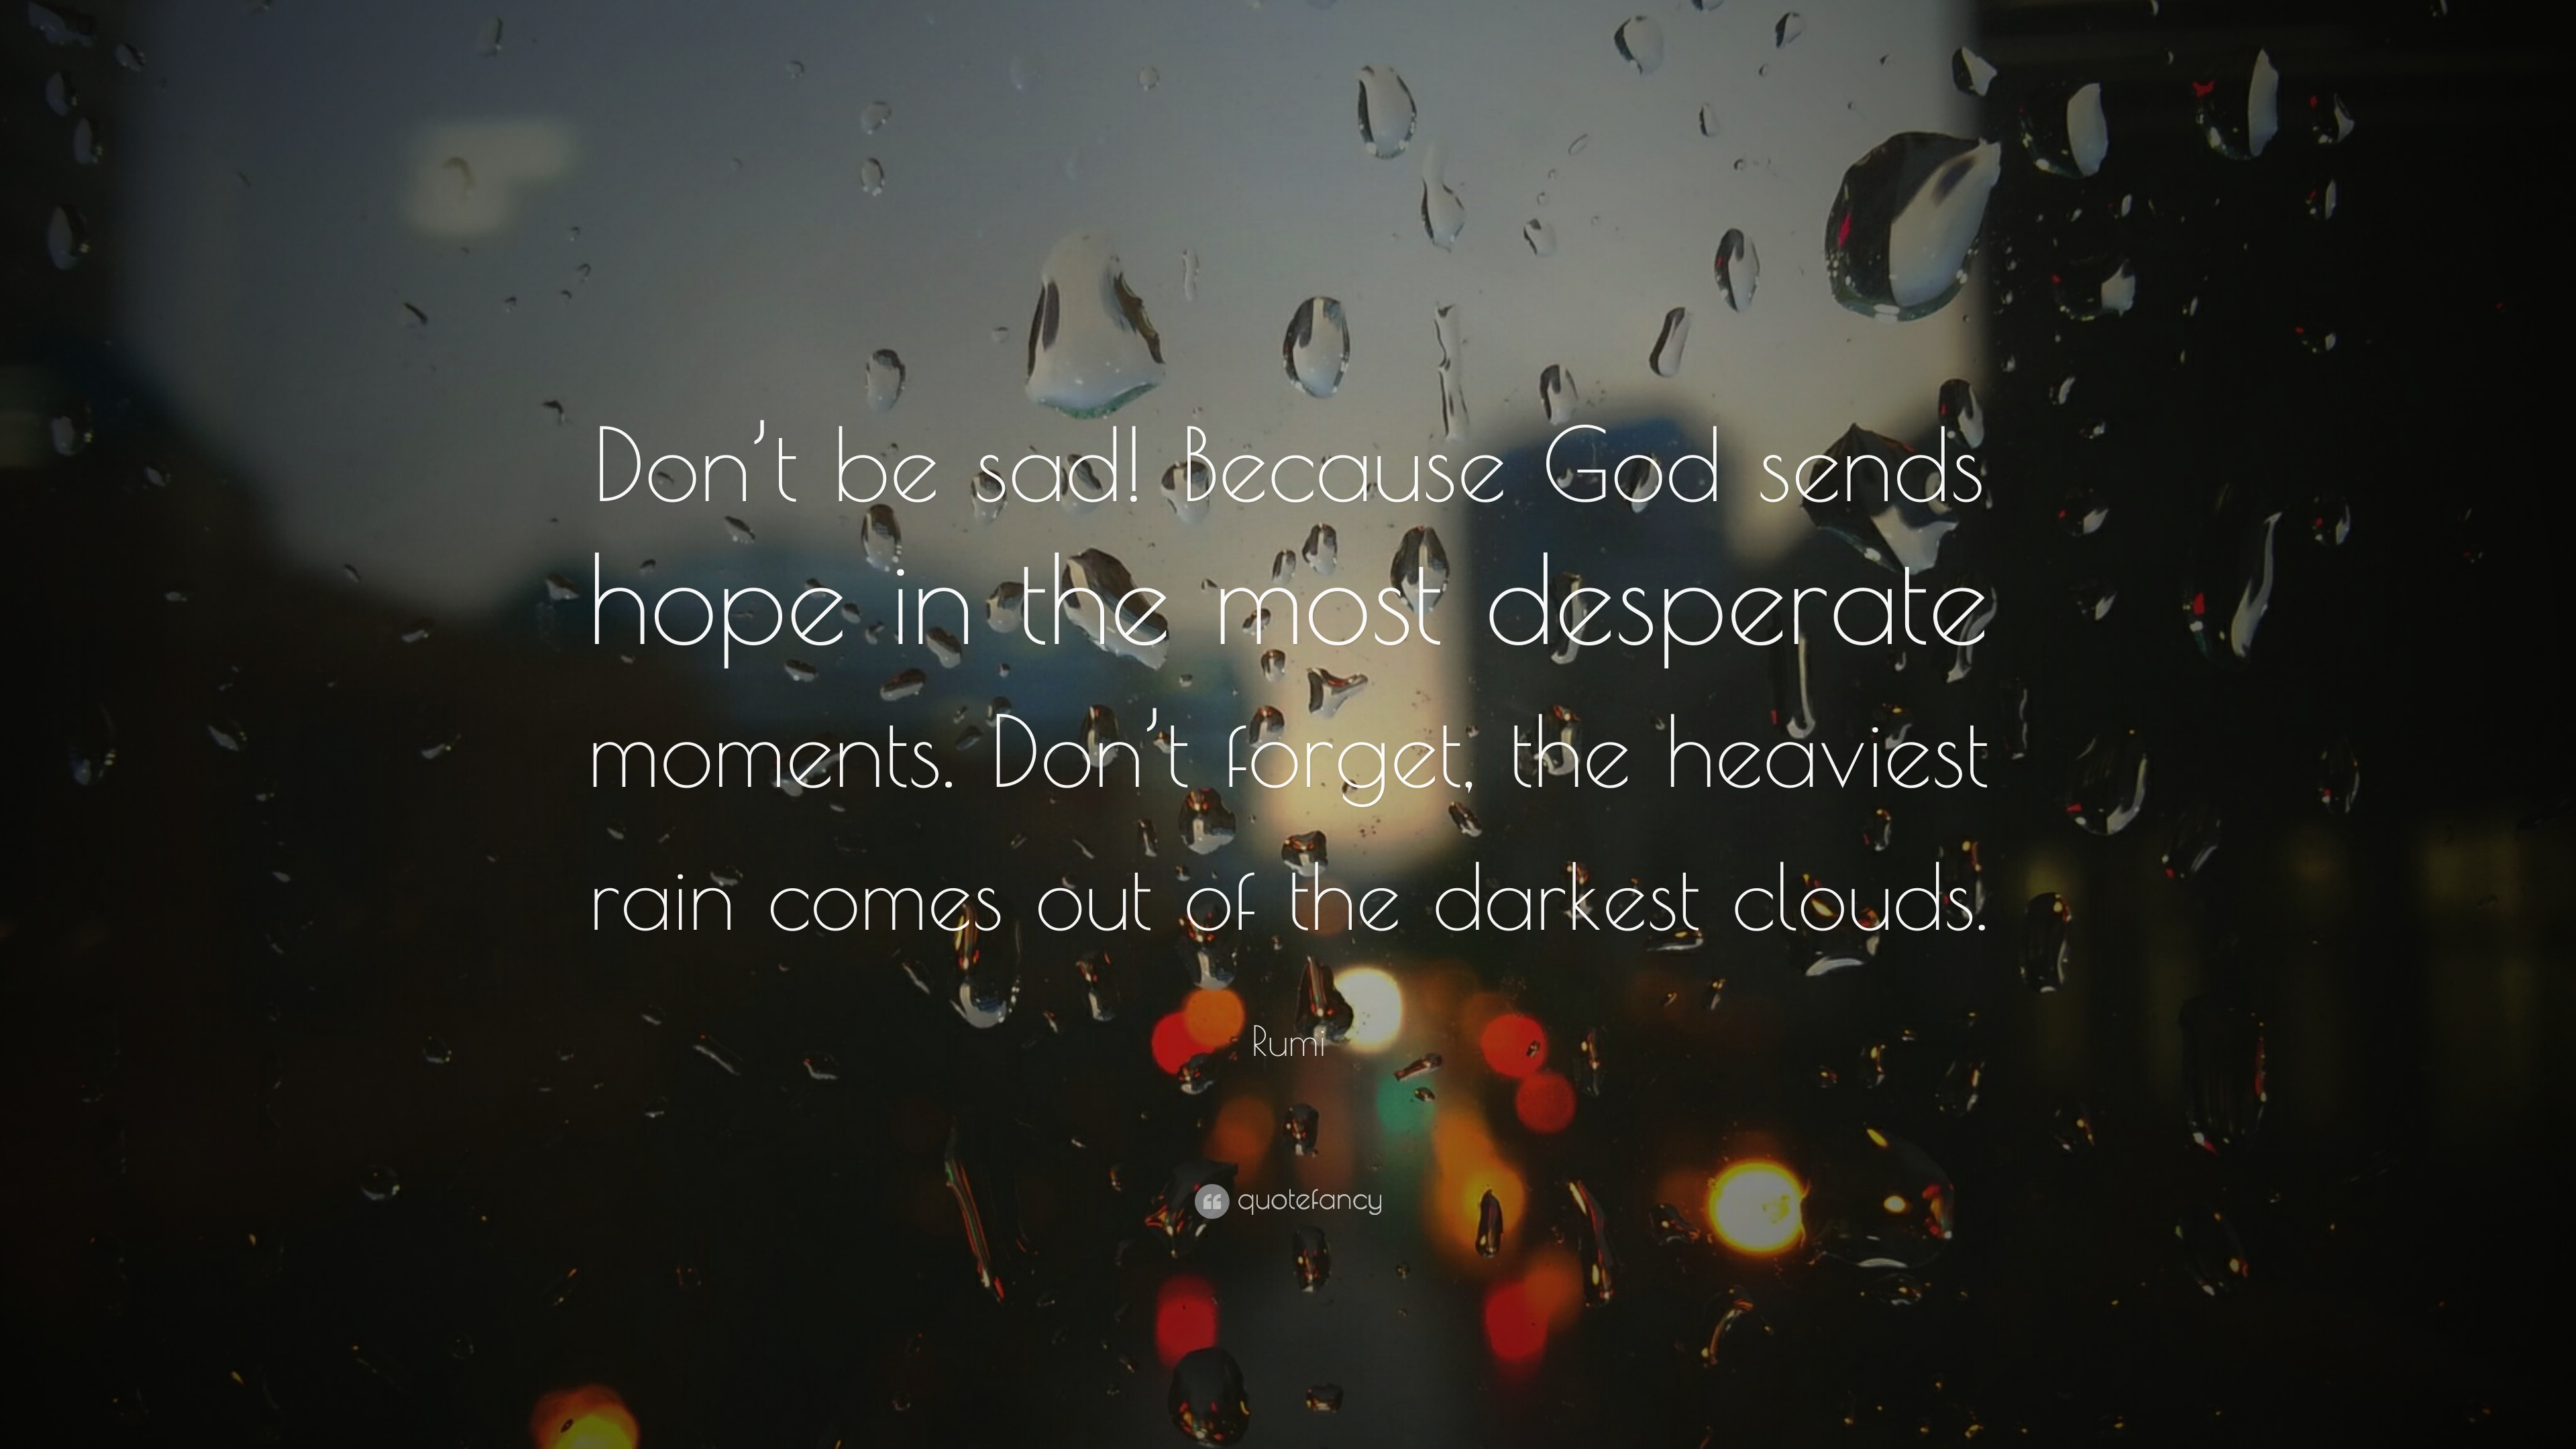 Rumi Quote Don T Be Sad Because God Sends Hope In The Most Desperate Moments Don T Forget The Heaviest Rain Comes Out Of The Dar 18 Wallpapers Quotefancy Along with the very best collect. rumi quote don t be sad because god